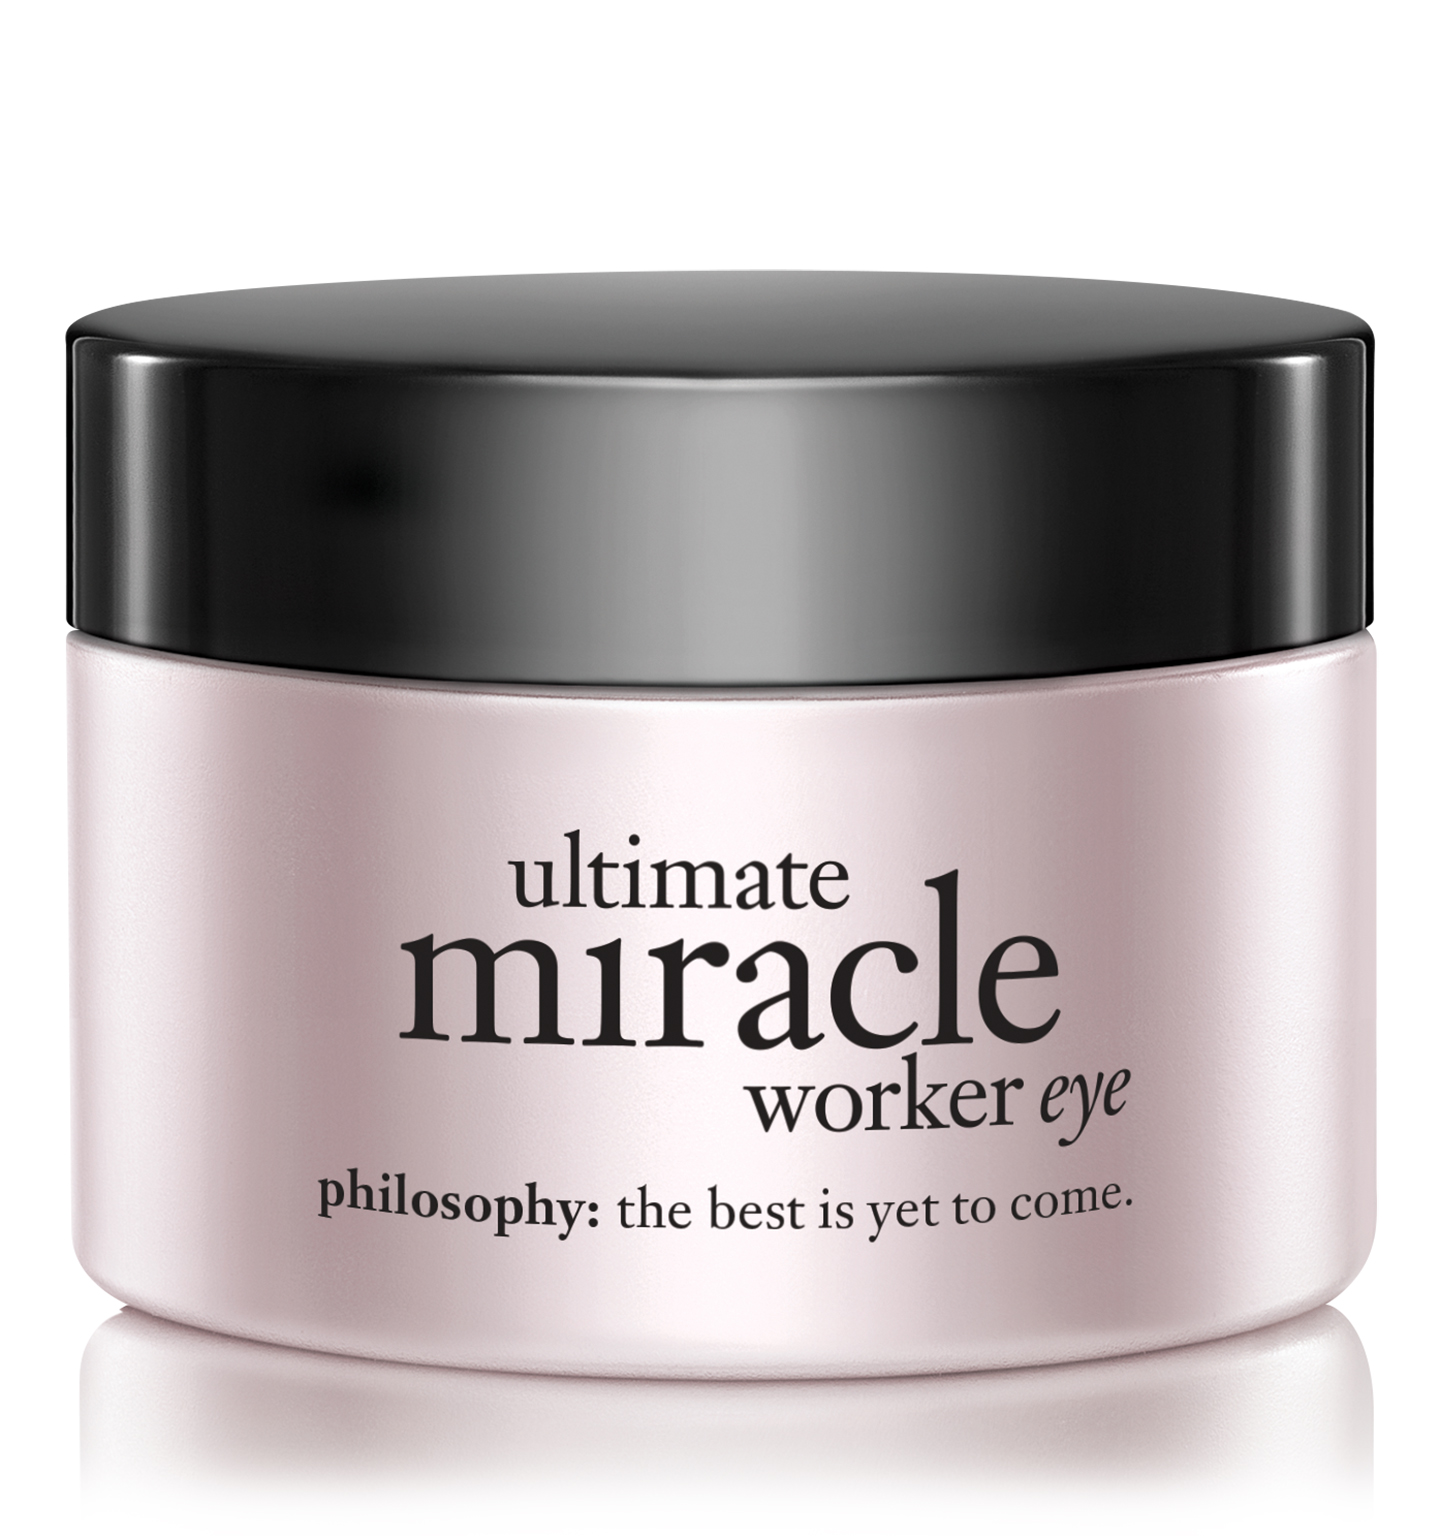 ultimate miracle worker eye cream spf 15